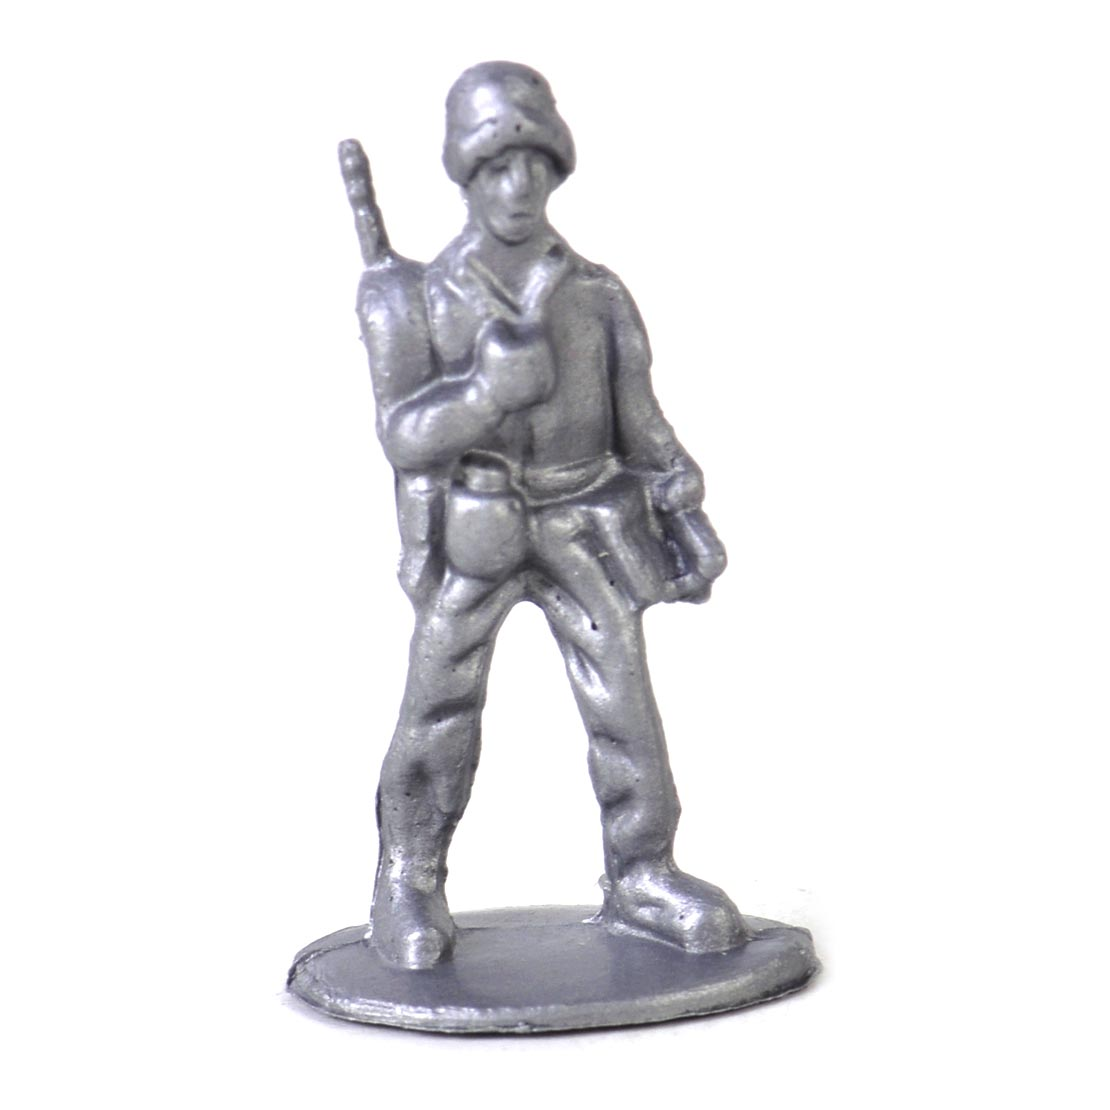 Toy Soldiers For Boys : New pcs toy military soldiers army men figures